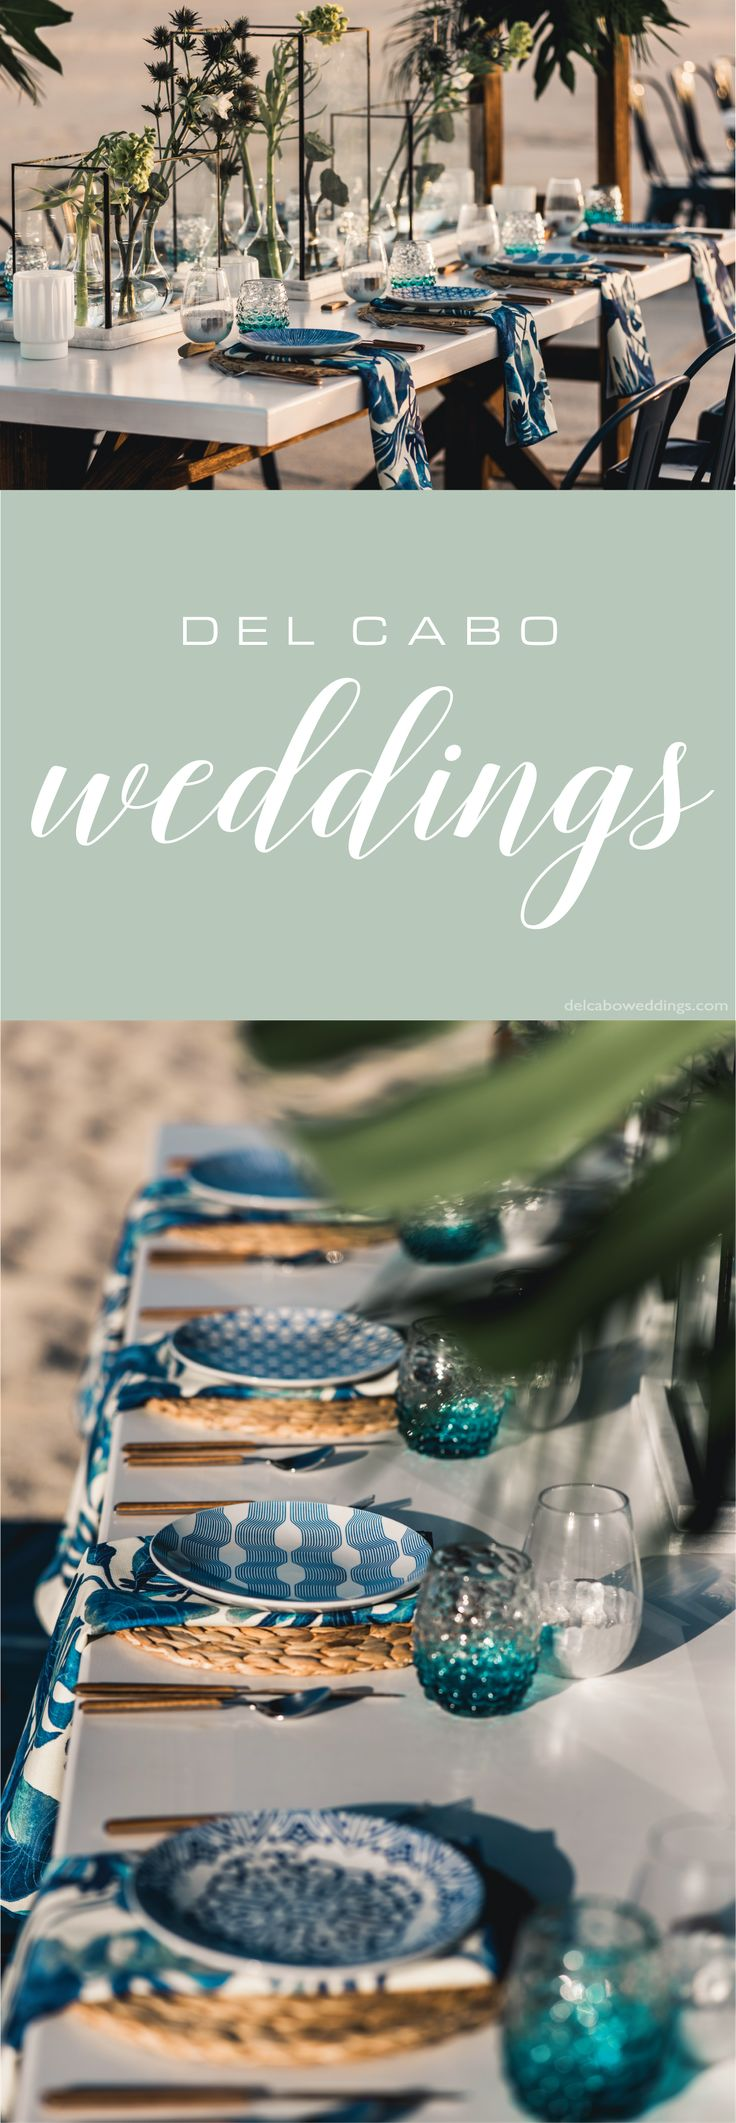 Seaside wedding idea decorations for your beautiful reception. Combine green and blue tones in a nautical organic setting!